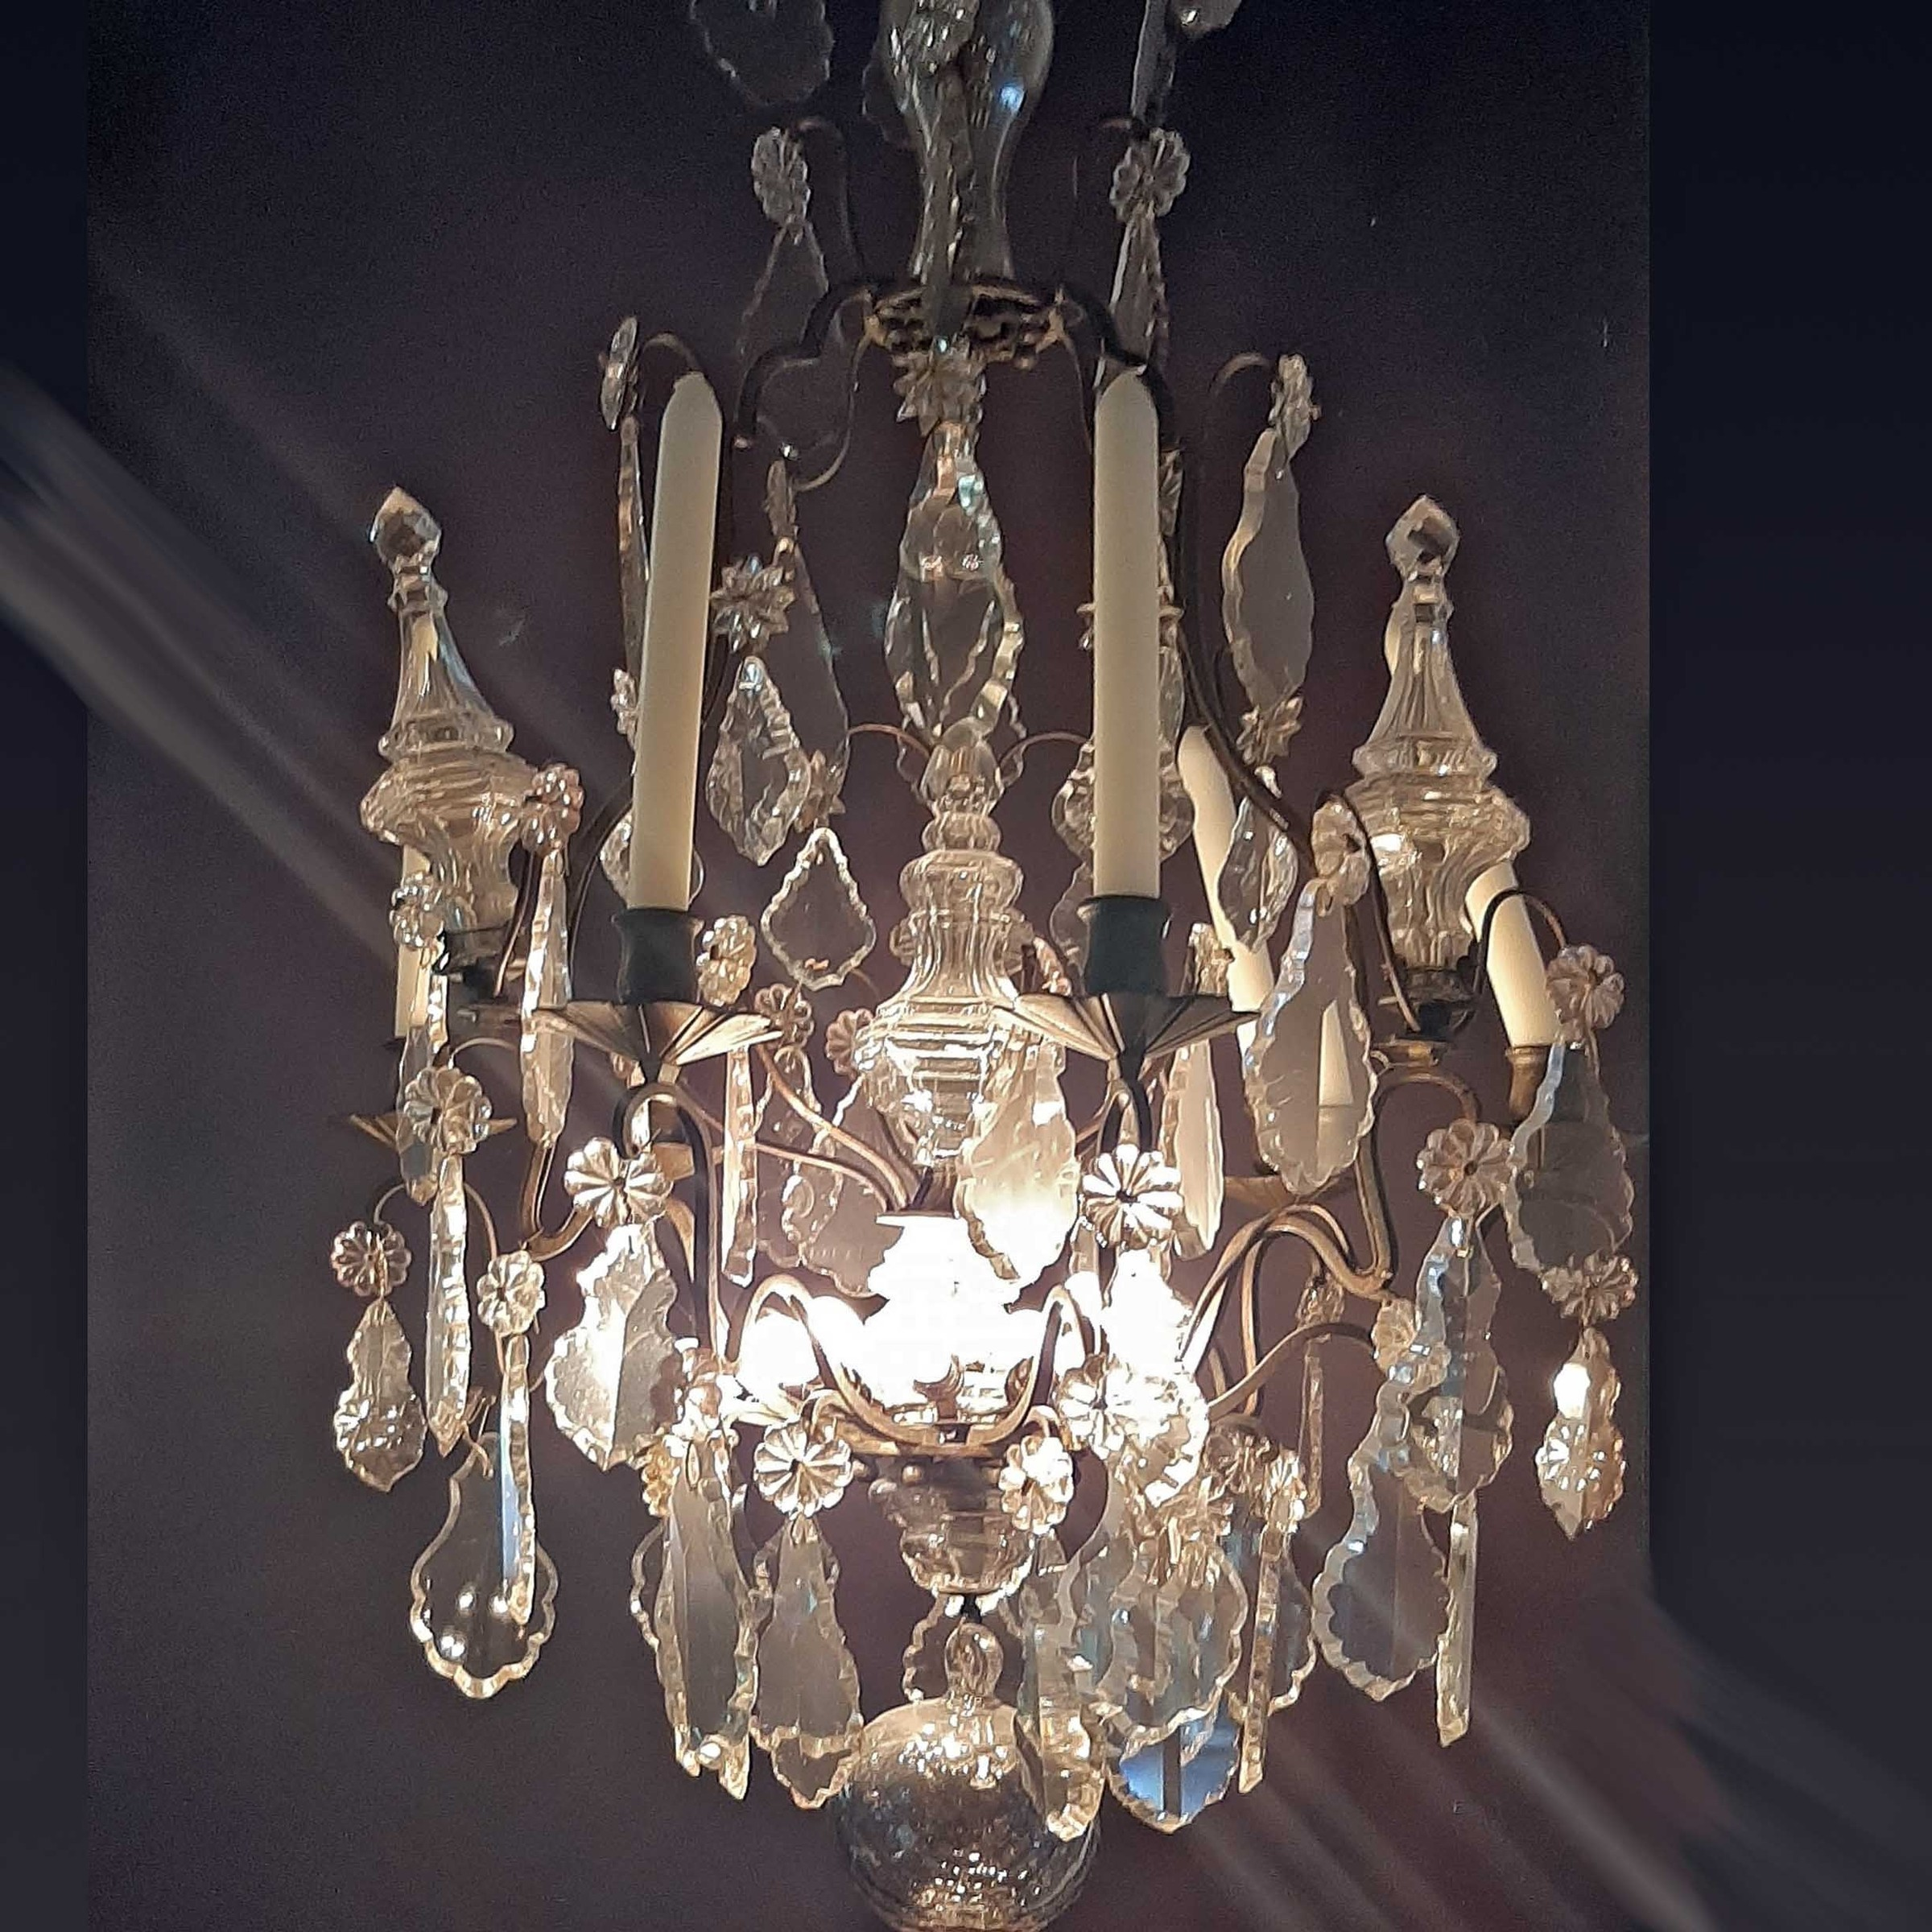 Antique French cut-glass chandelier